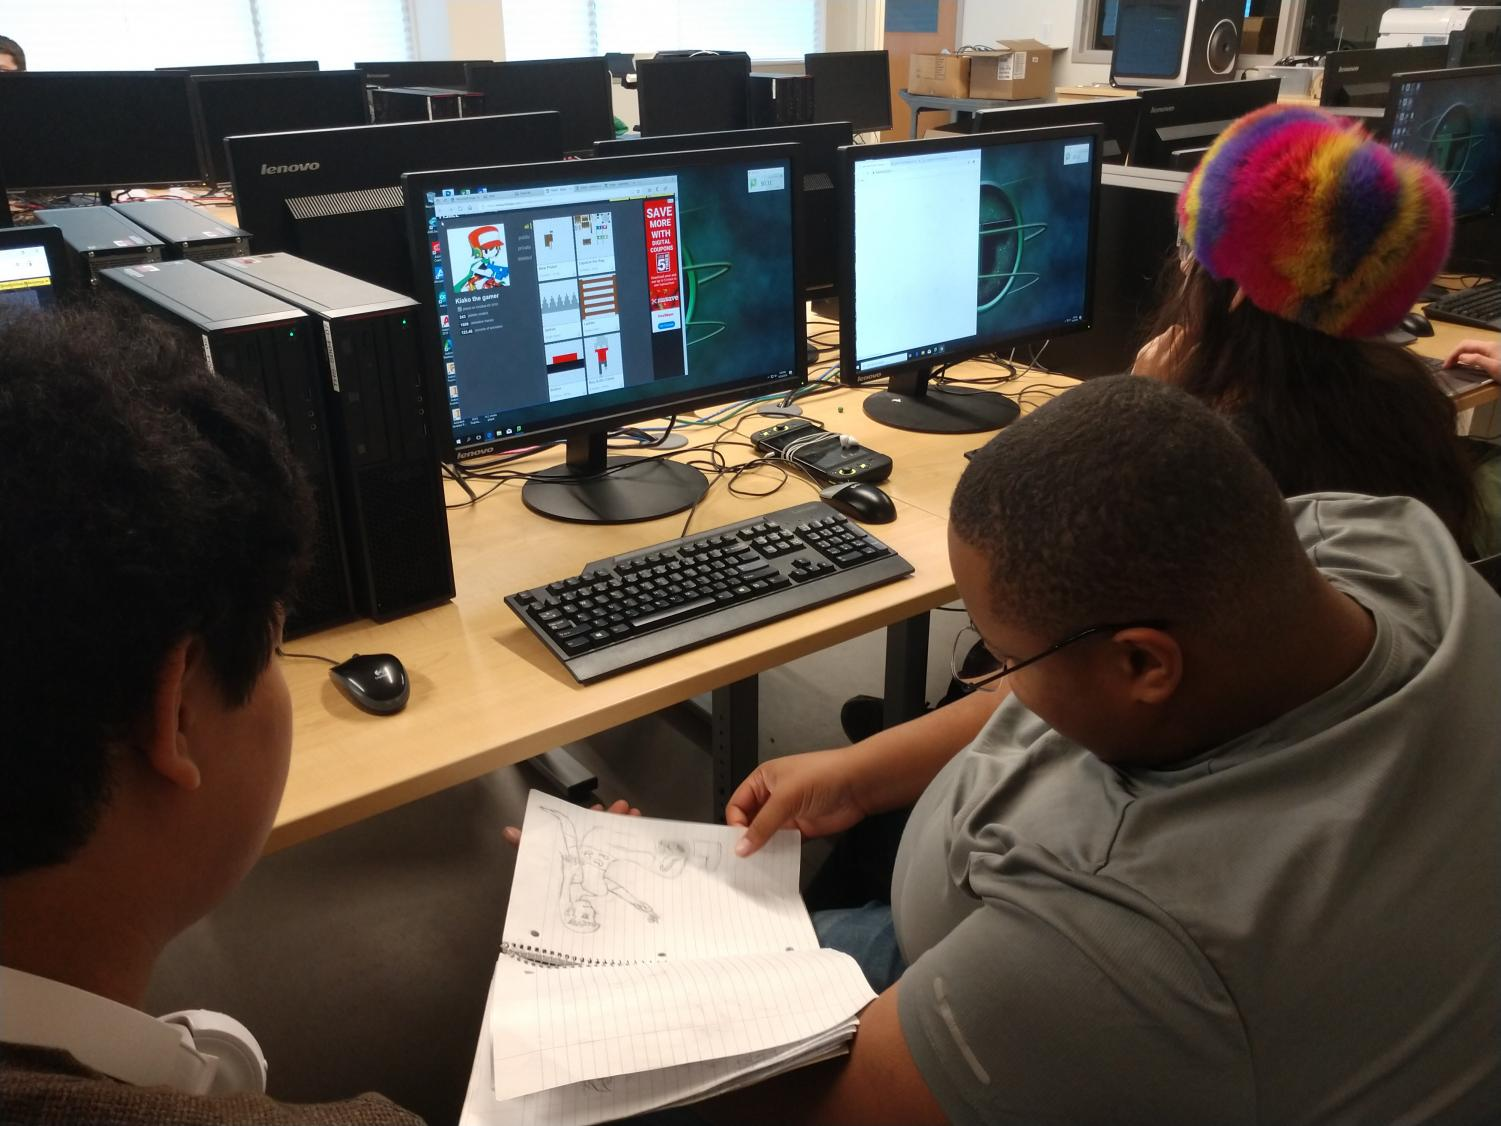 From left to right: Khanh Nguyen (10), Xavier Walker (12) and Jimmy Nguyen (12) look through a sketchbook to compile ideas for their game. Studio Gemini is recruiting members to compete in this year's OGPC.